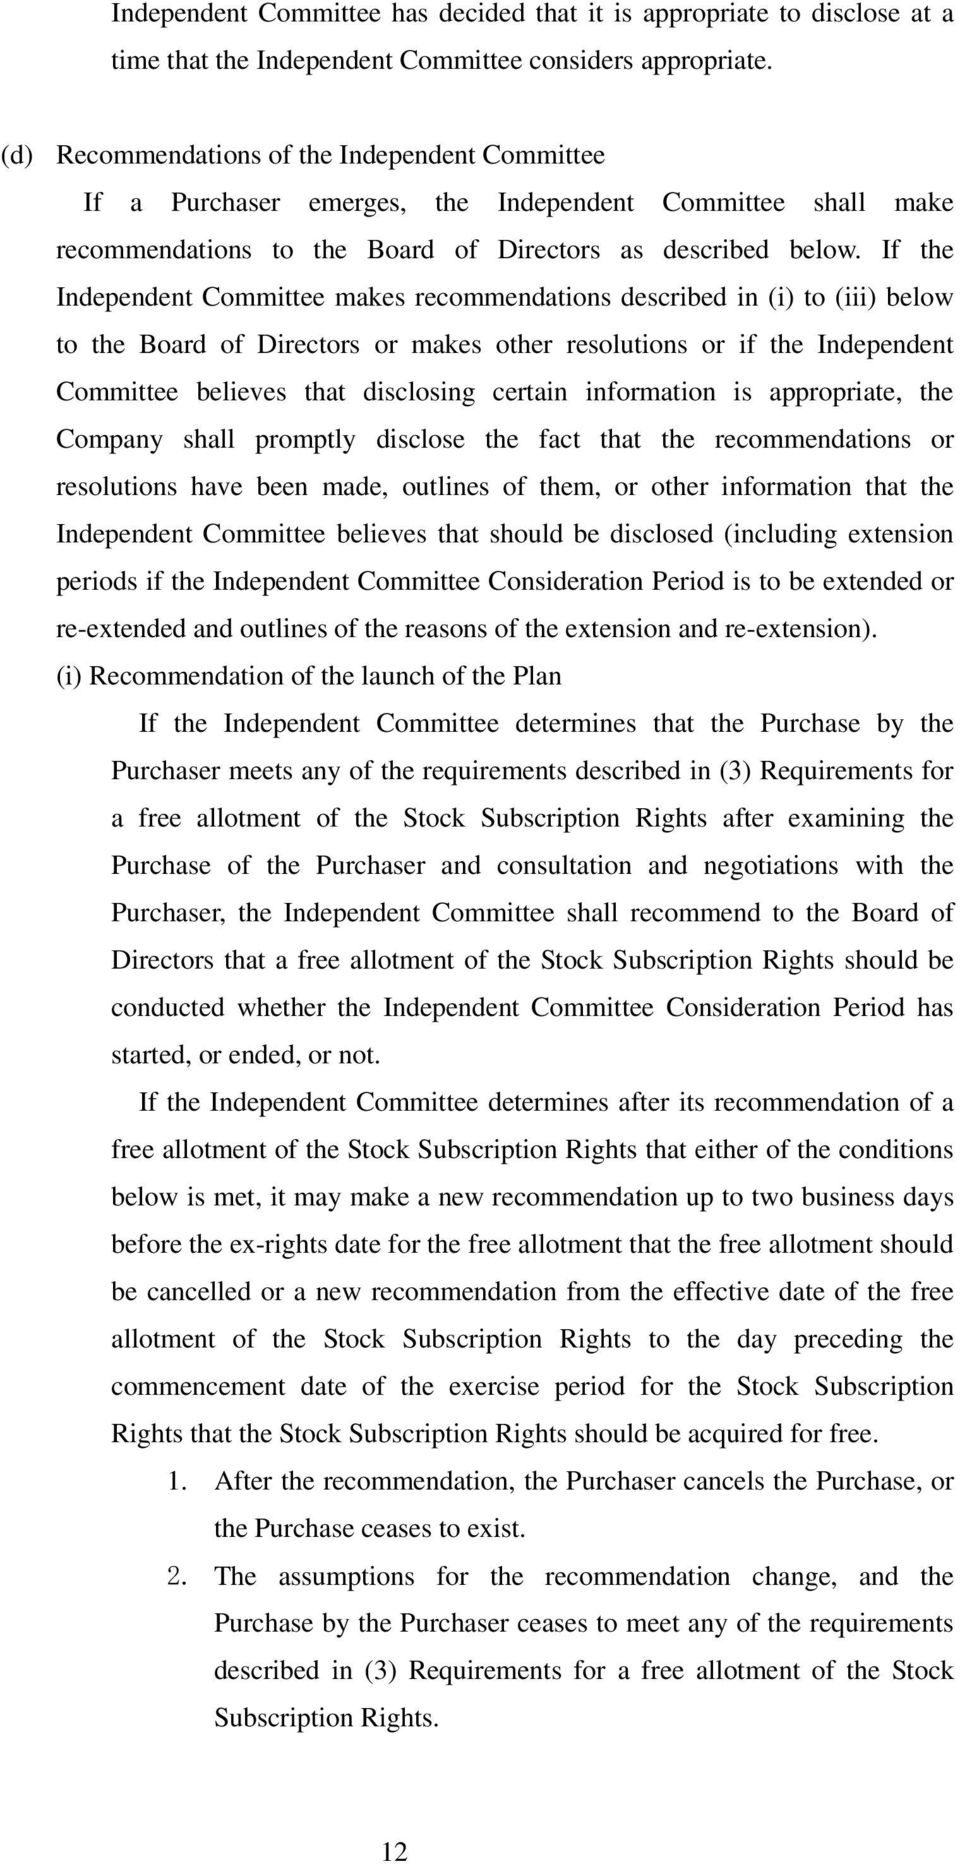 If the Independent Committee makes recommendations described in (i) to (iii) below to the Board of Directors or makes other resolutions or if the Independent Committee believes that disclosing